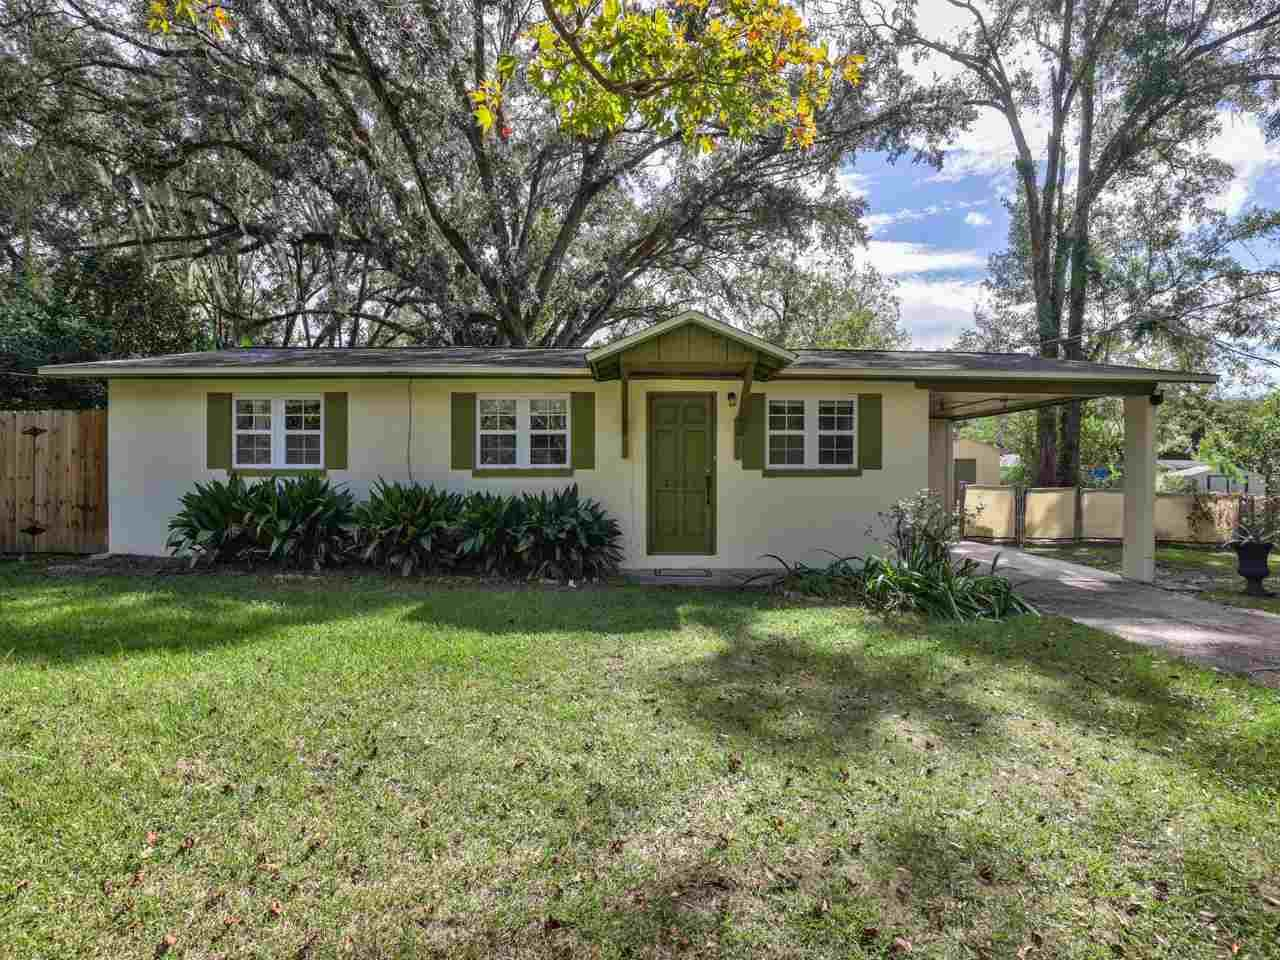 2001 Woodstock Lane, Tallahassee, FL 32303 - MLS#: 324948